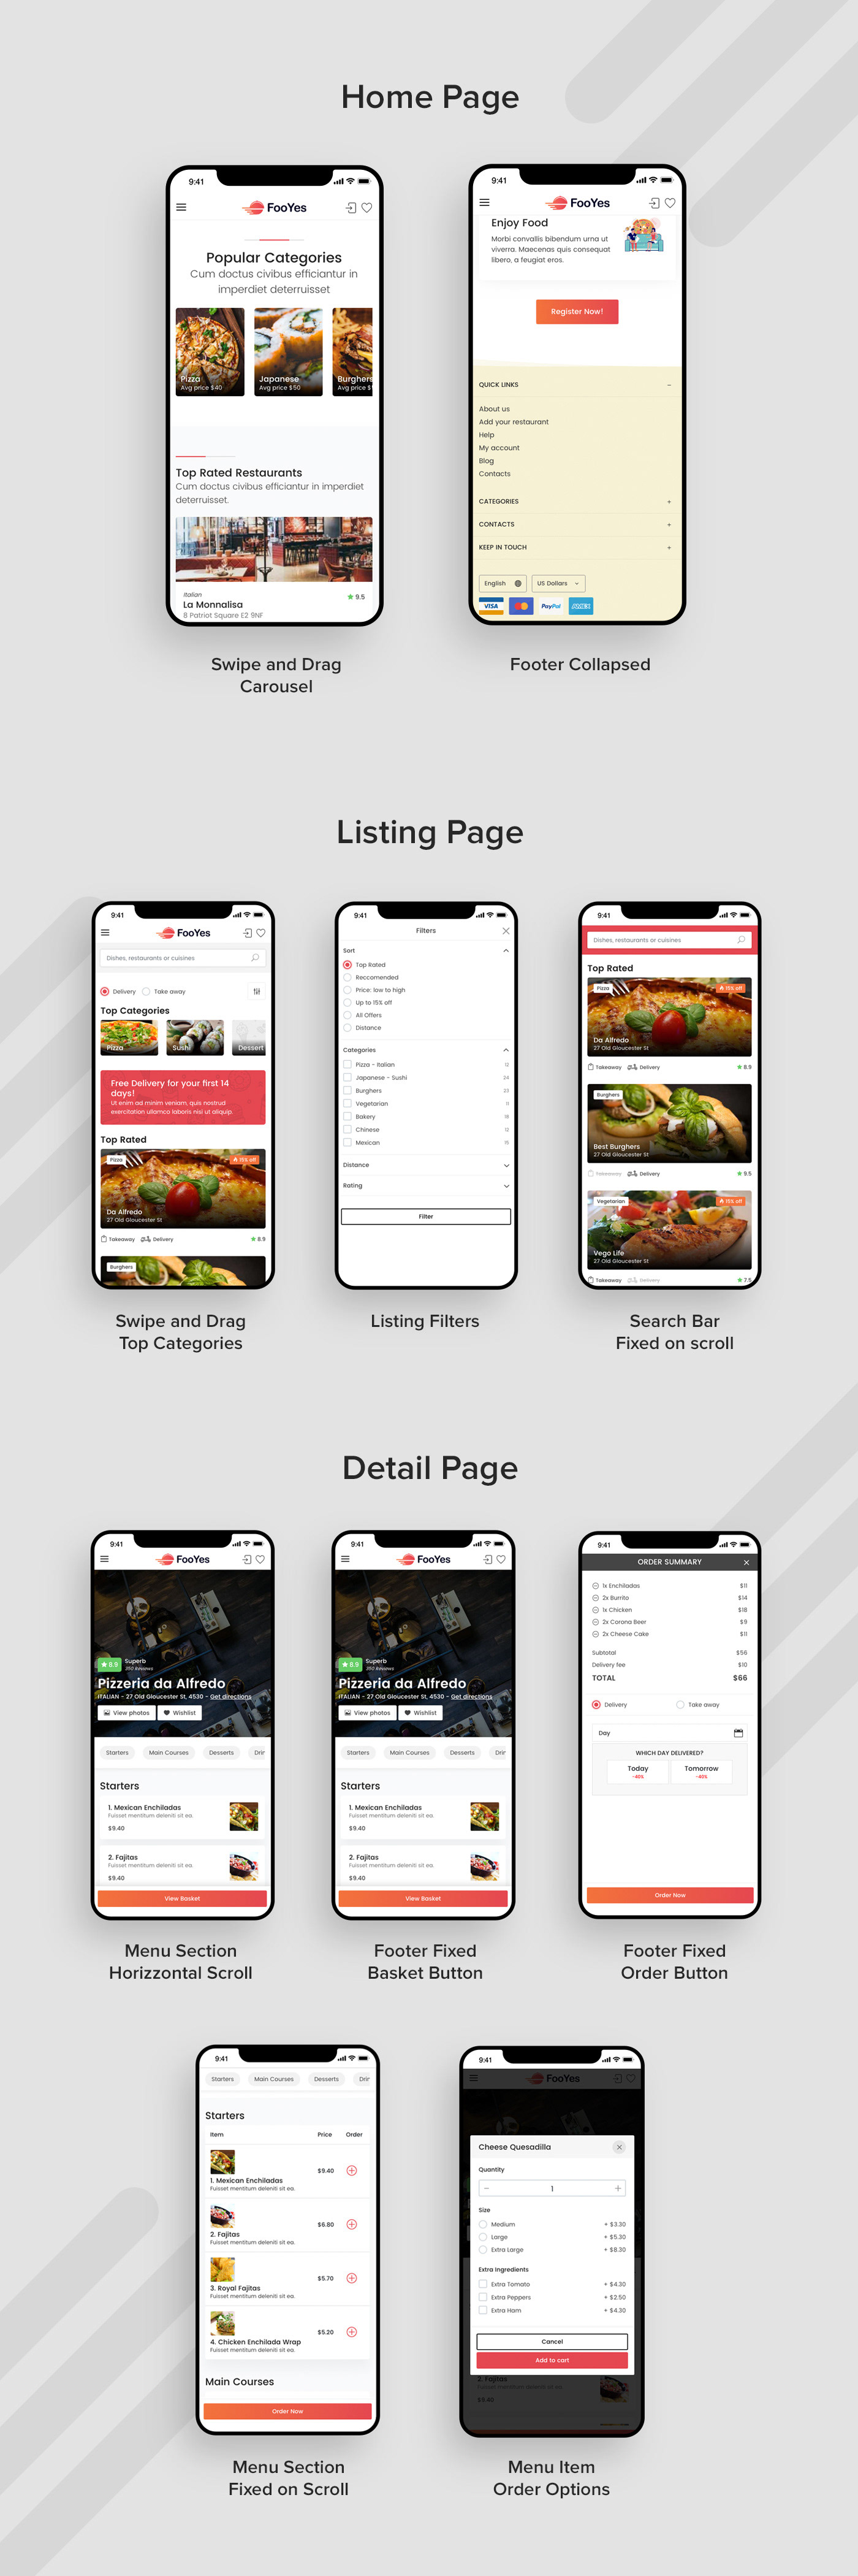 Deliveroo delivery Fast food Food  justeat Listings modern page speed Pizza restaurants